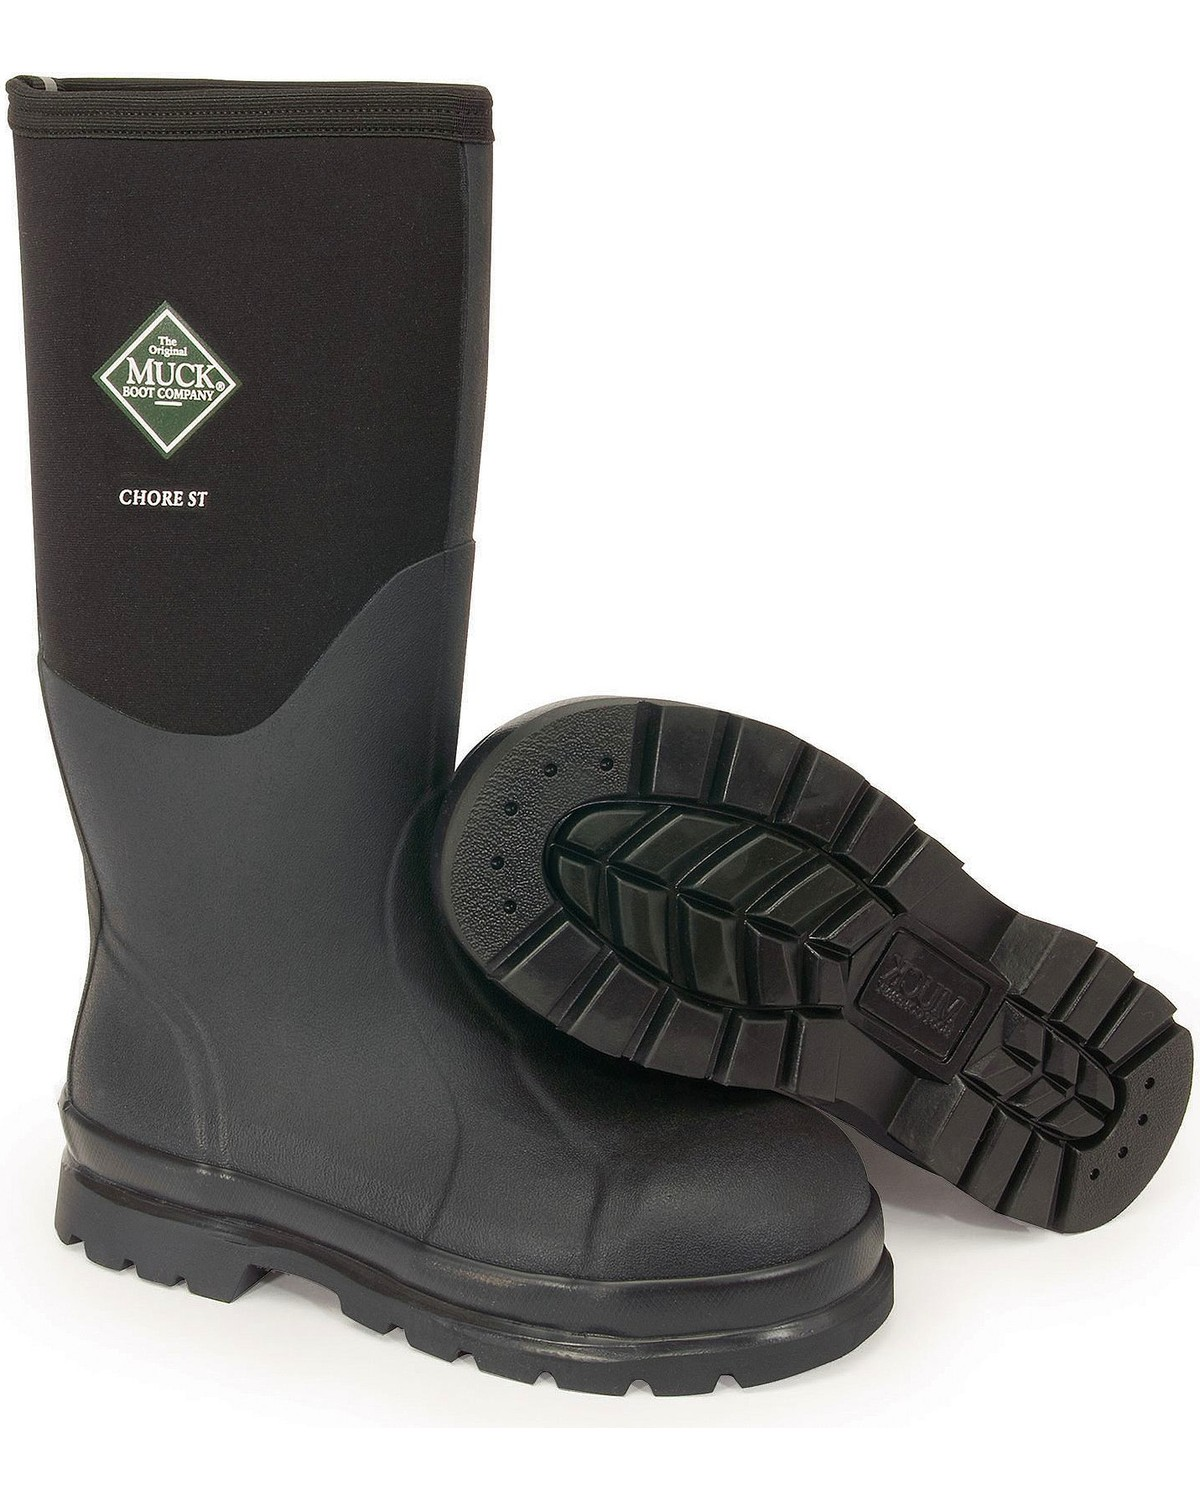 39959916025 The Original Muck Boot Co. Chore Steel Toe Work Boots